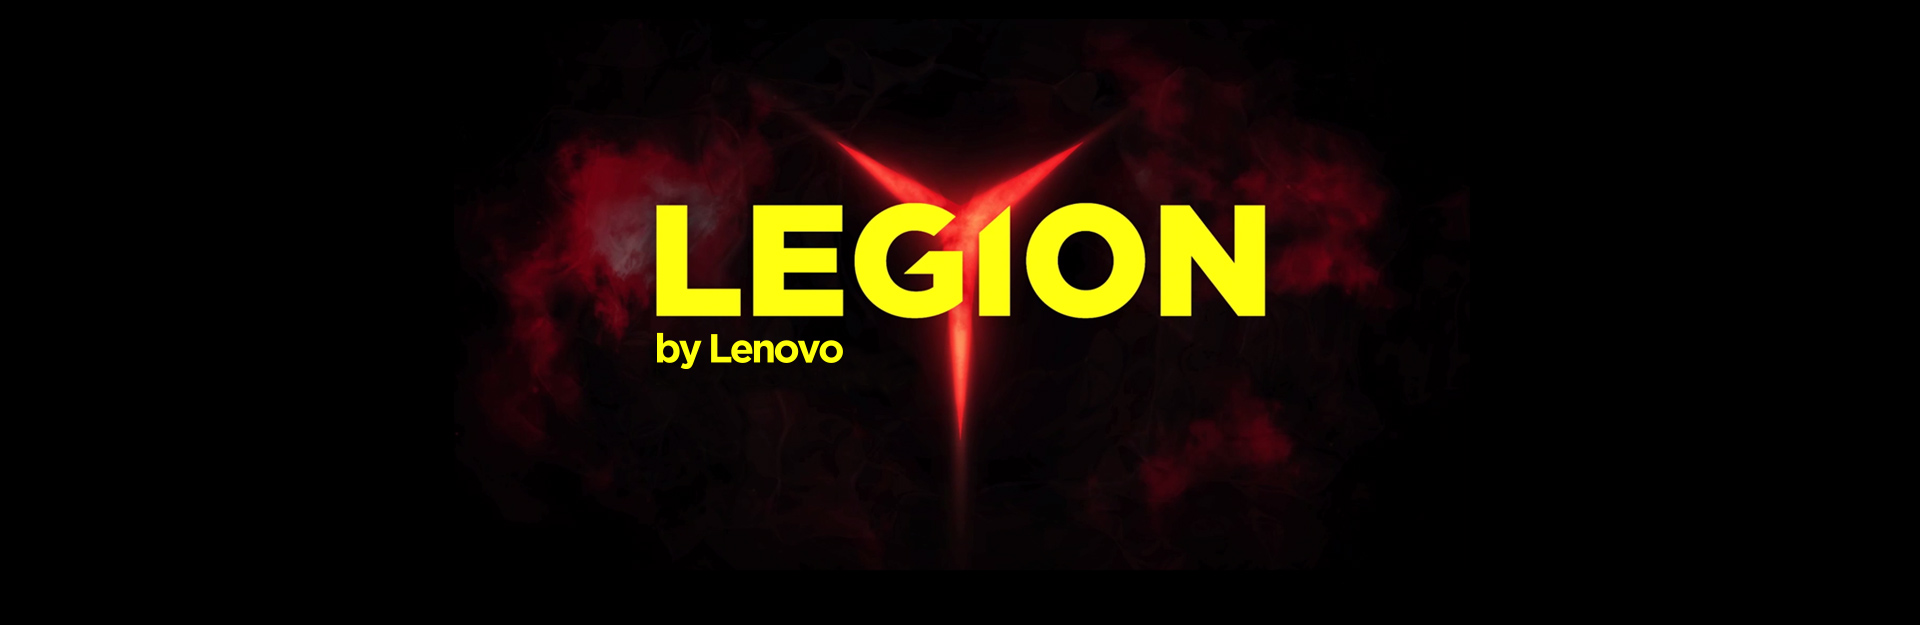 Legion by Lenovo